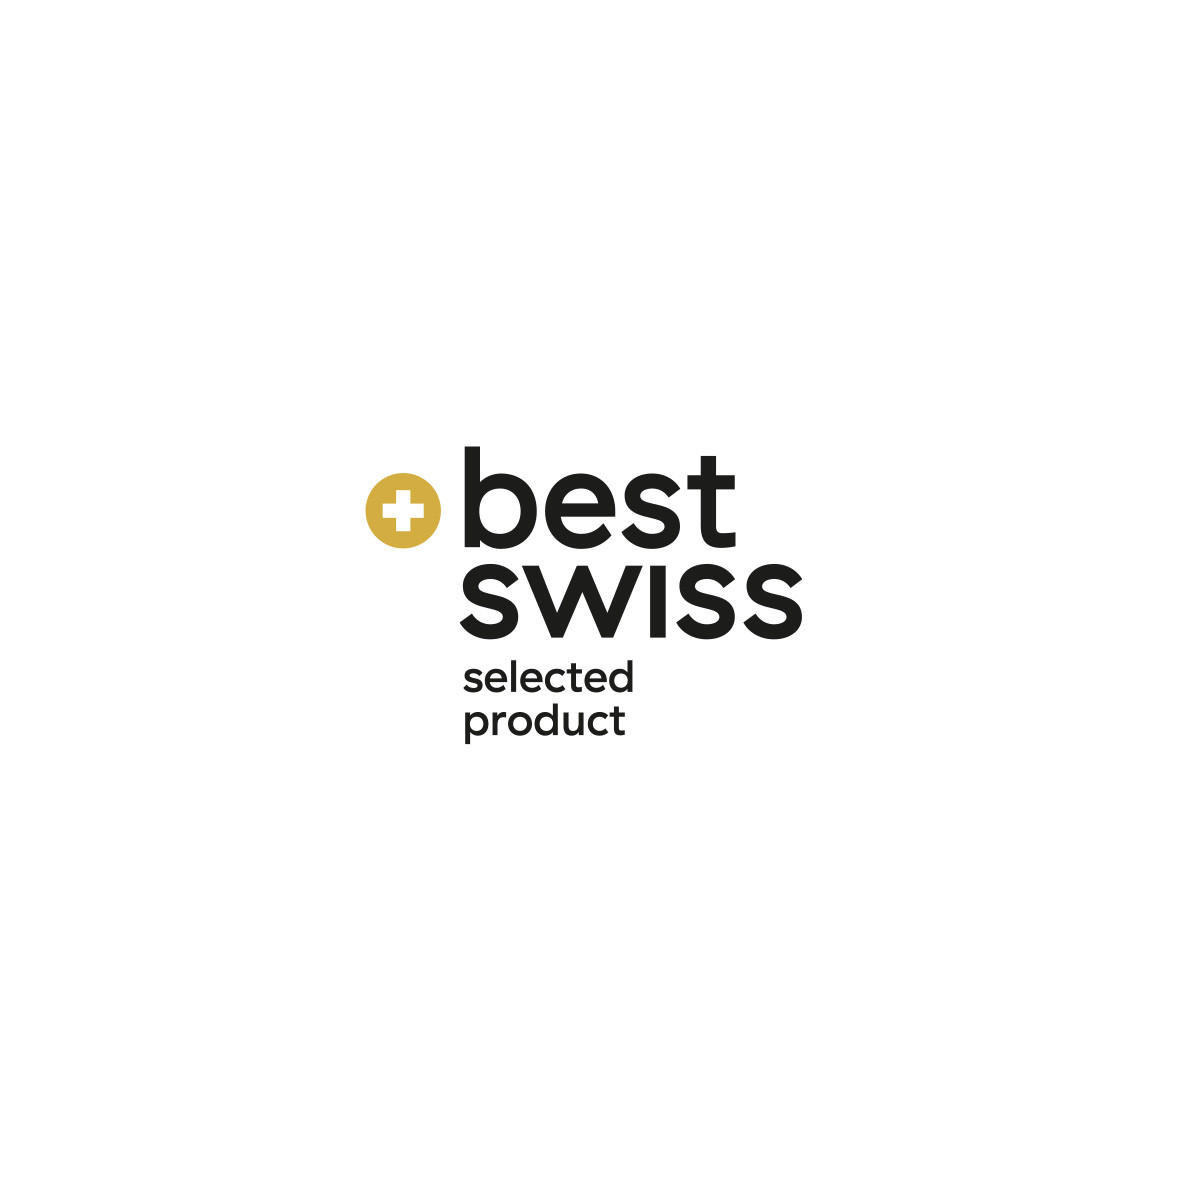 Swiss Made selected product Bestswiss Logo